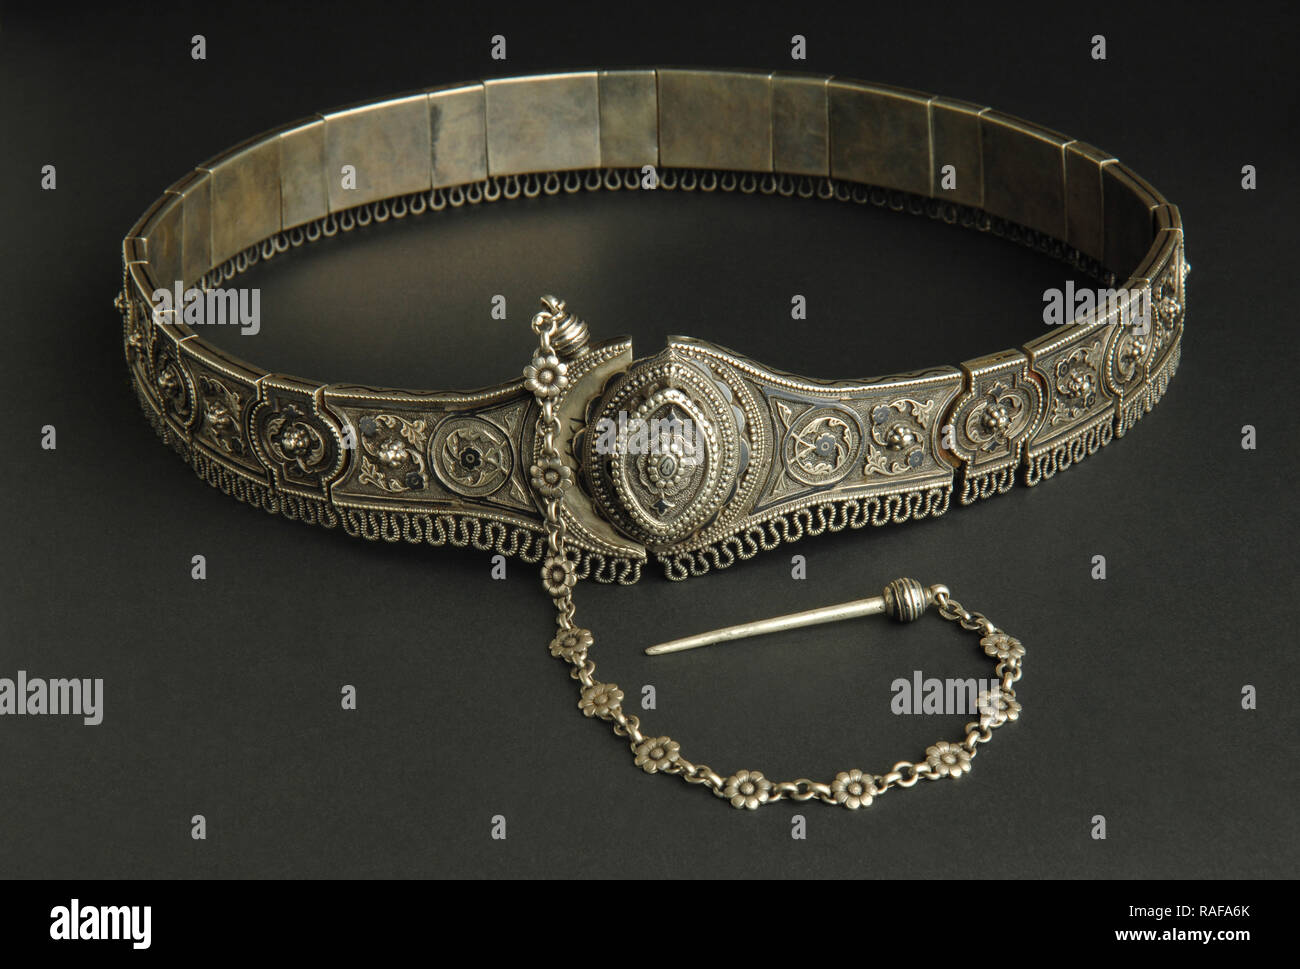 ancient antique belt on black background. Middle-Asian vintage jewelry - Stock Image